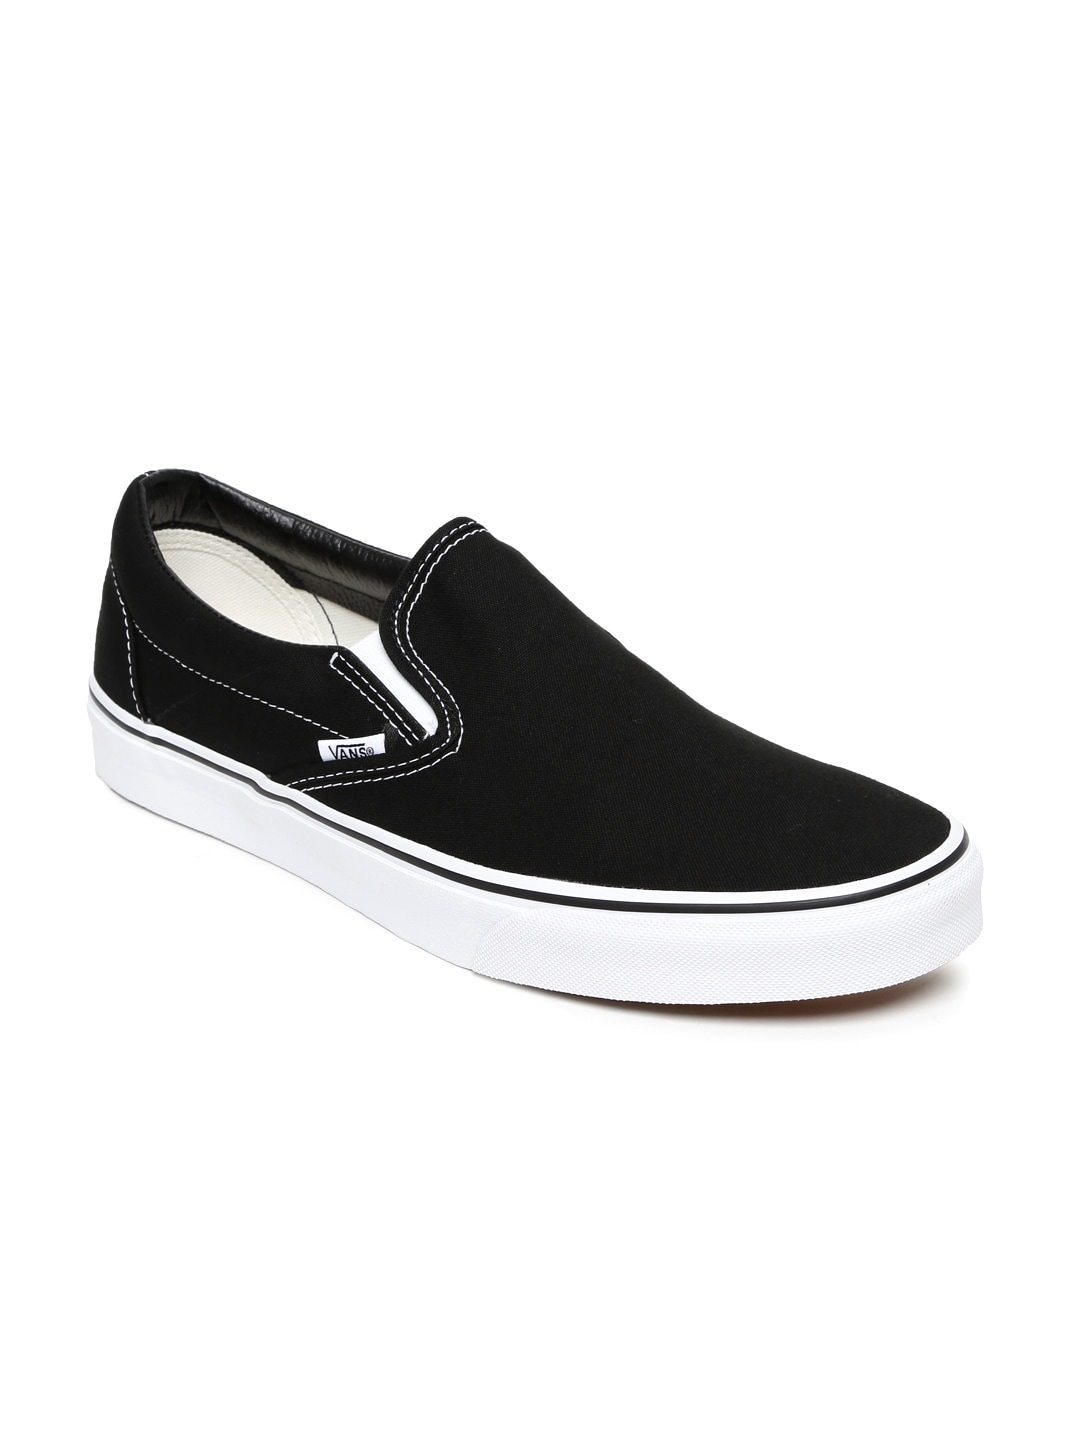 aab4d5029b Vans Shoes Casual - Buy Vans Shoes Casual online in India